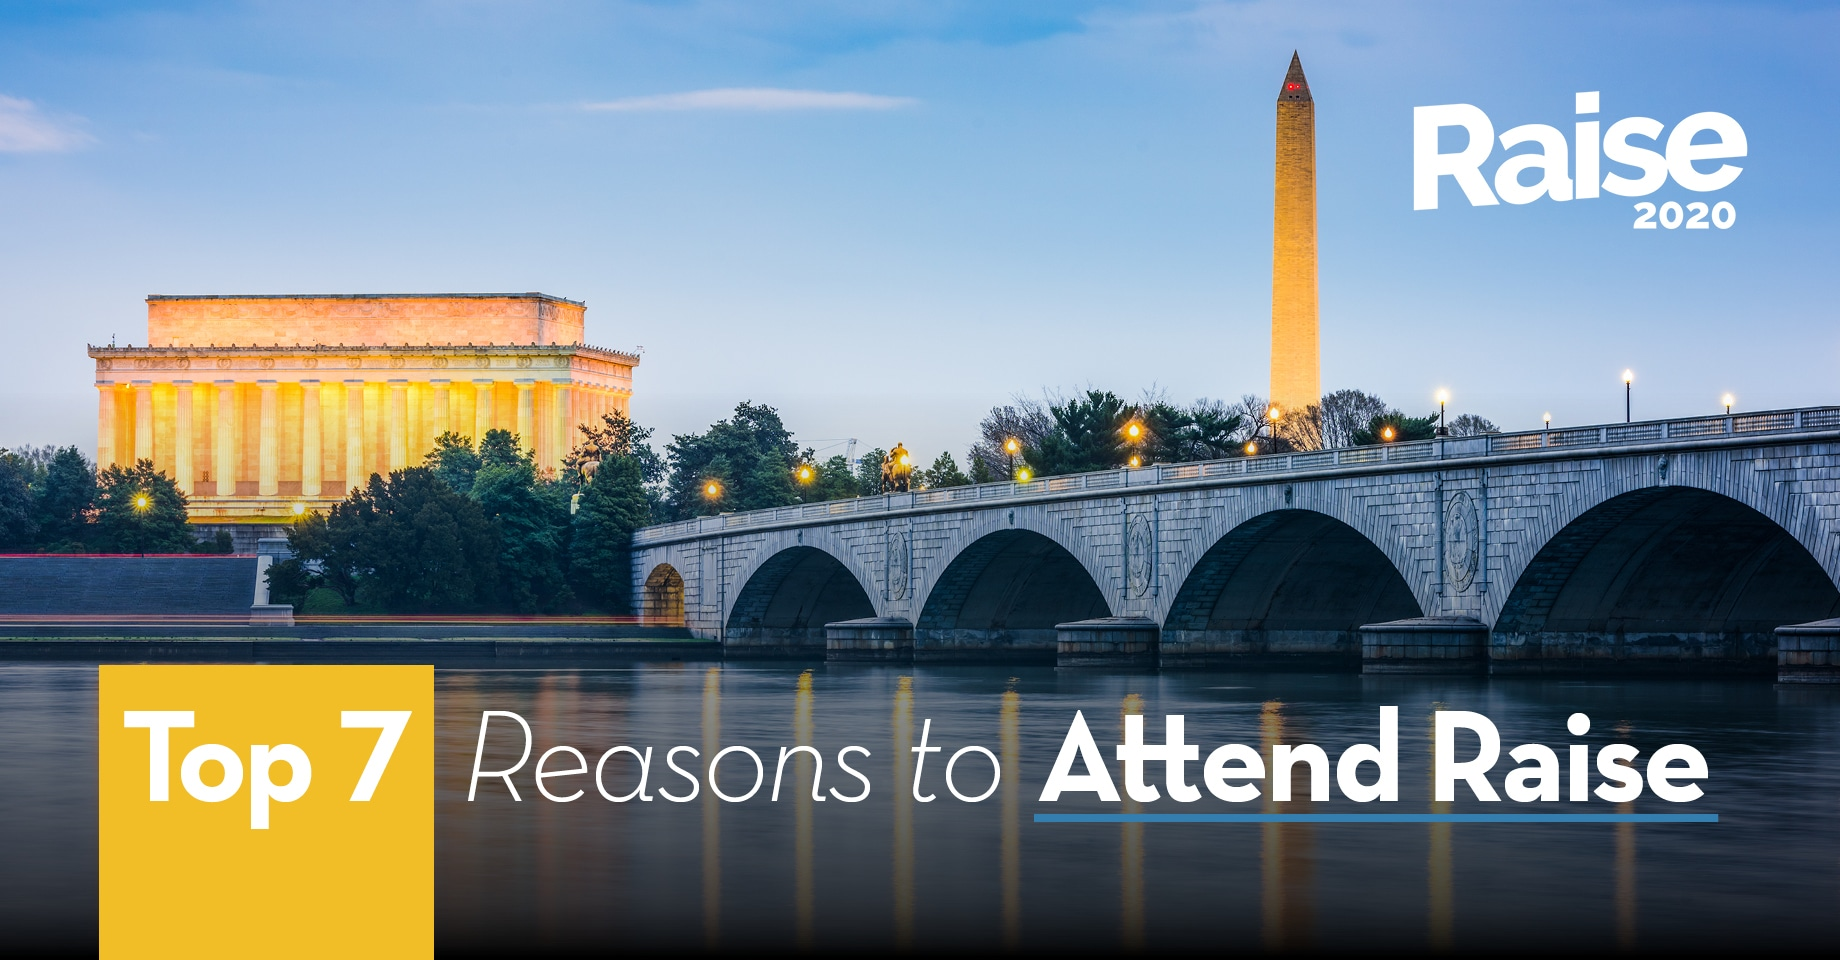 Top 7 Reasons to Attend Raise 2020 The Fundraising Conference by OneCause